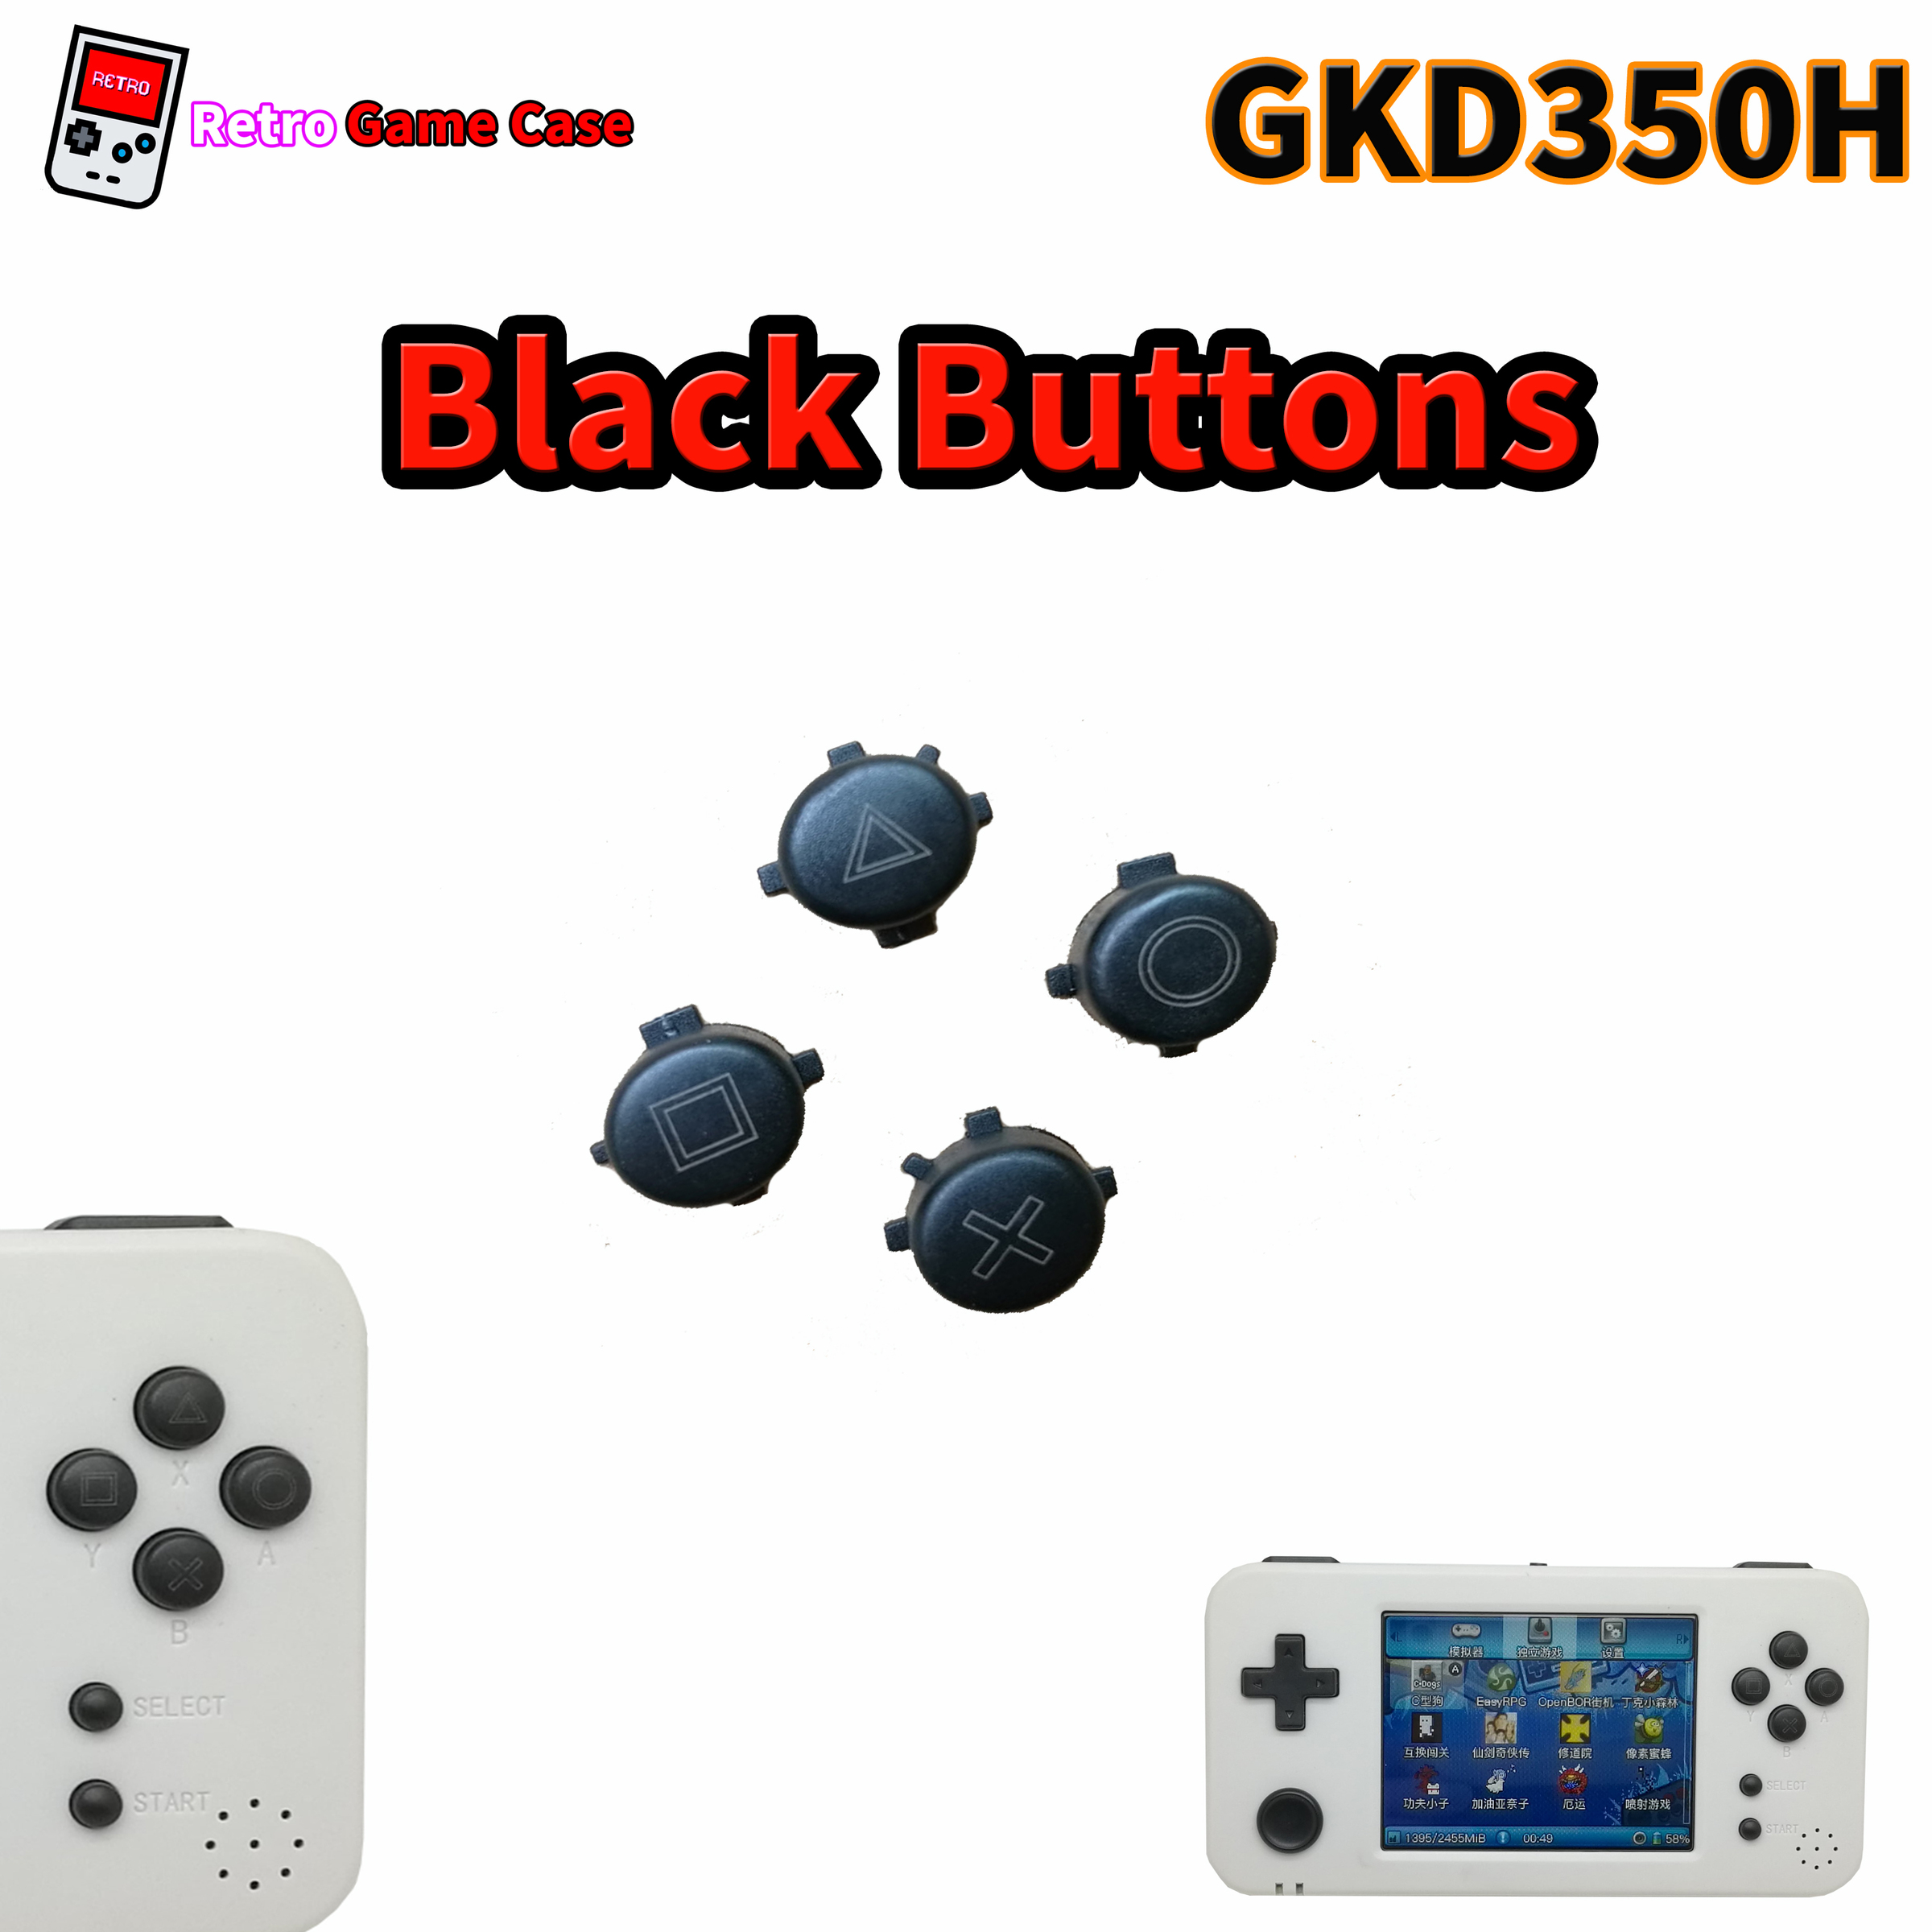 My_retro_game_case_GKD350H_Buttons_Black.jpg